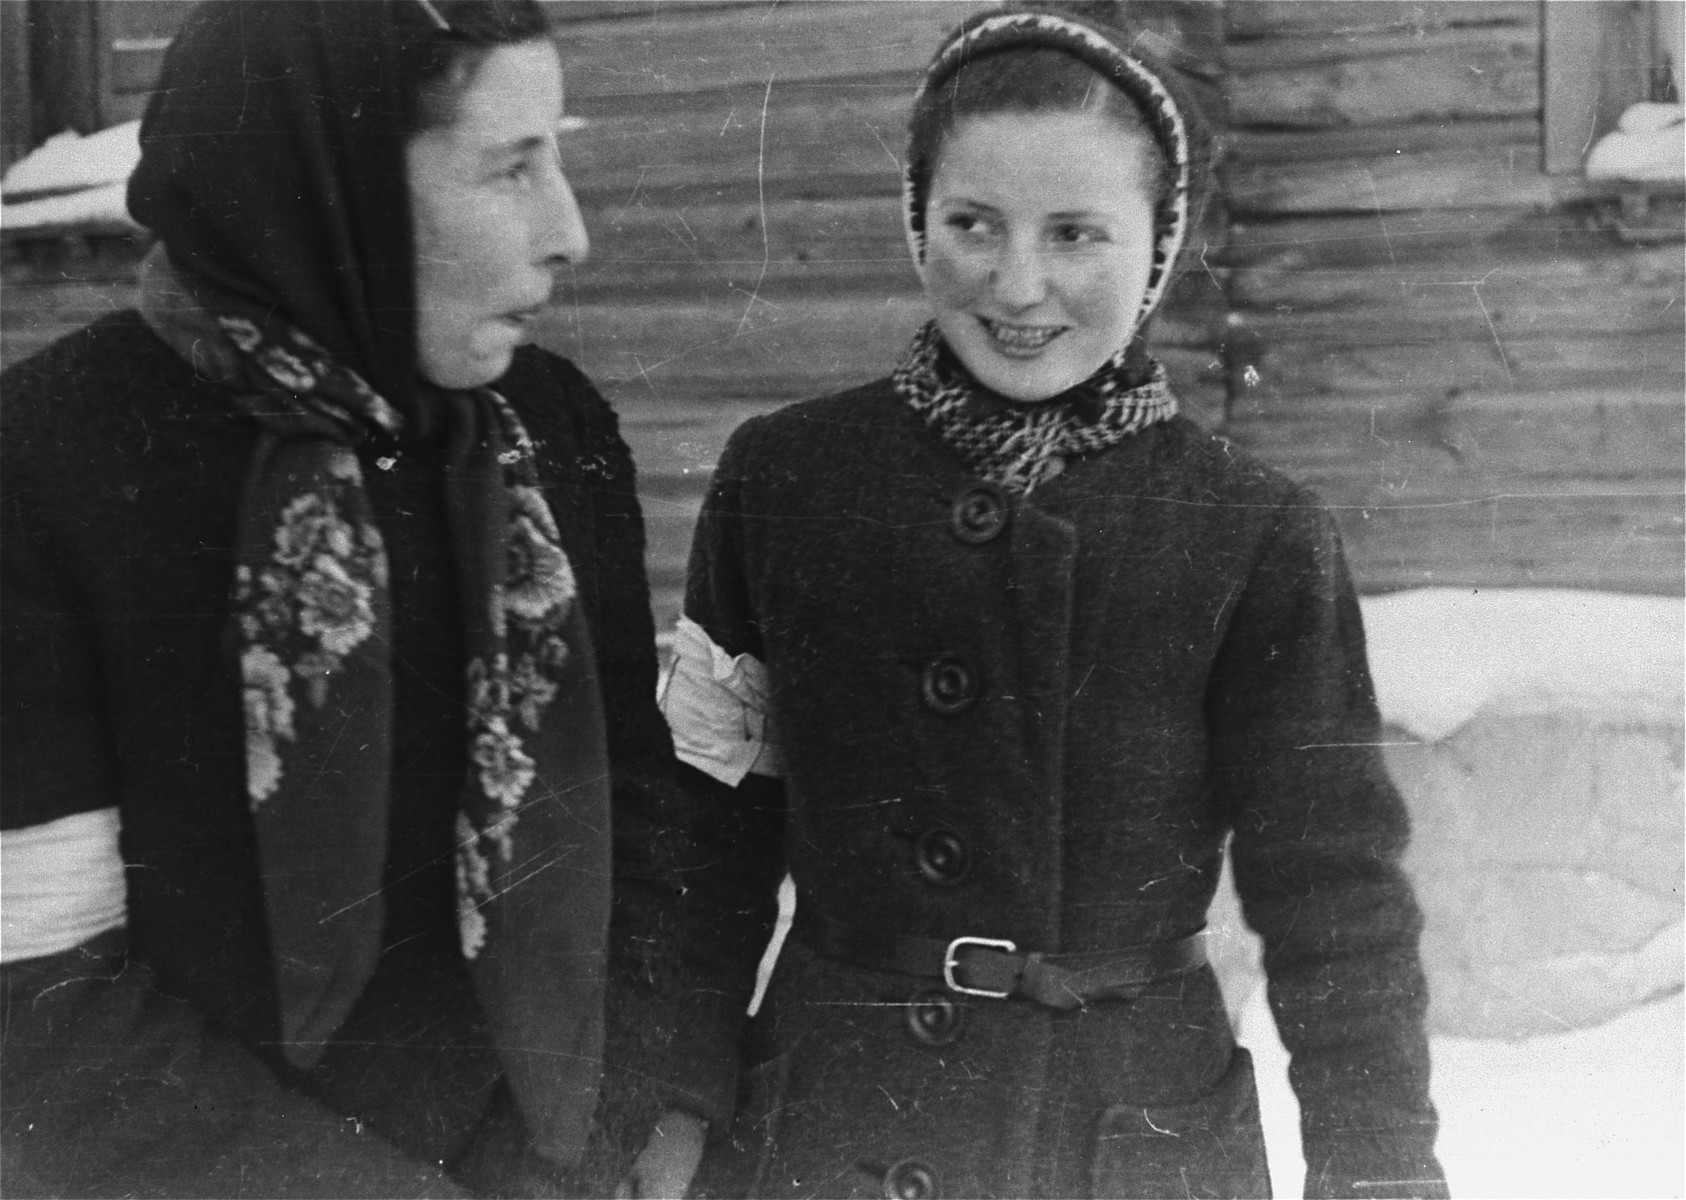 Local Jewish women wearing armbands pose for a photo taken by Jewish conscripts in the Hungarian Labor Service.